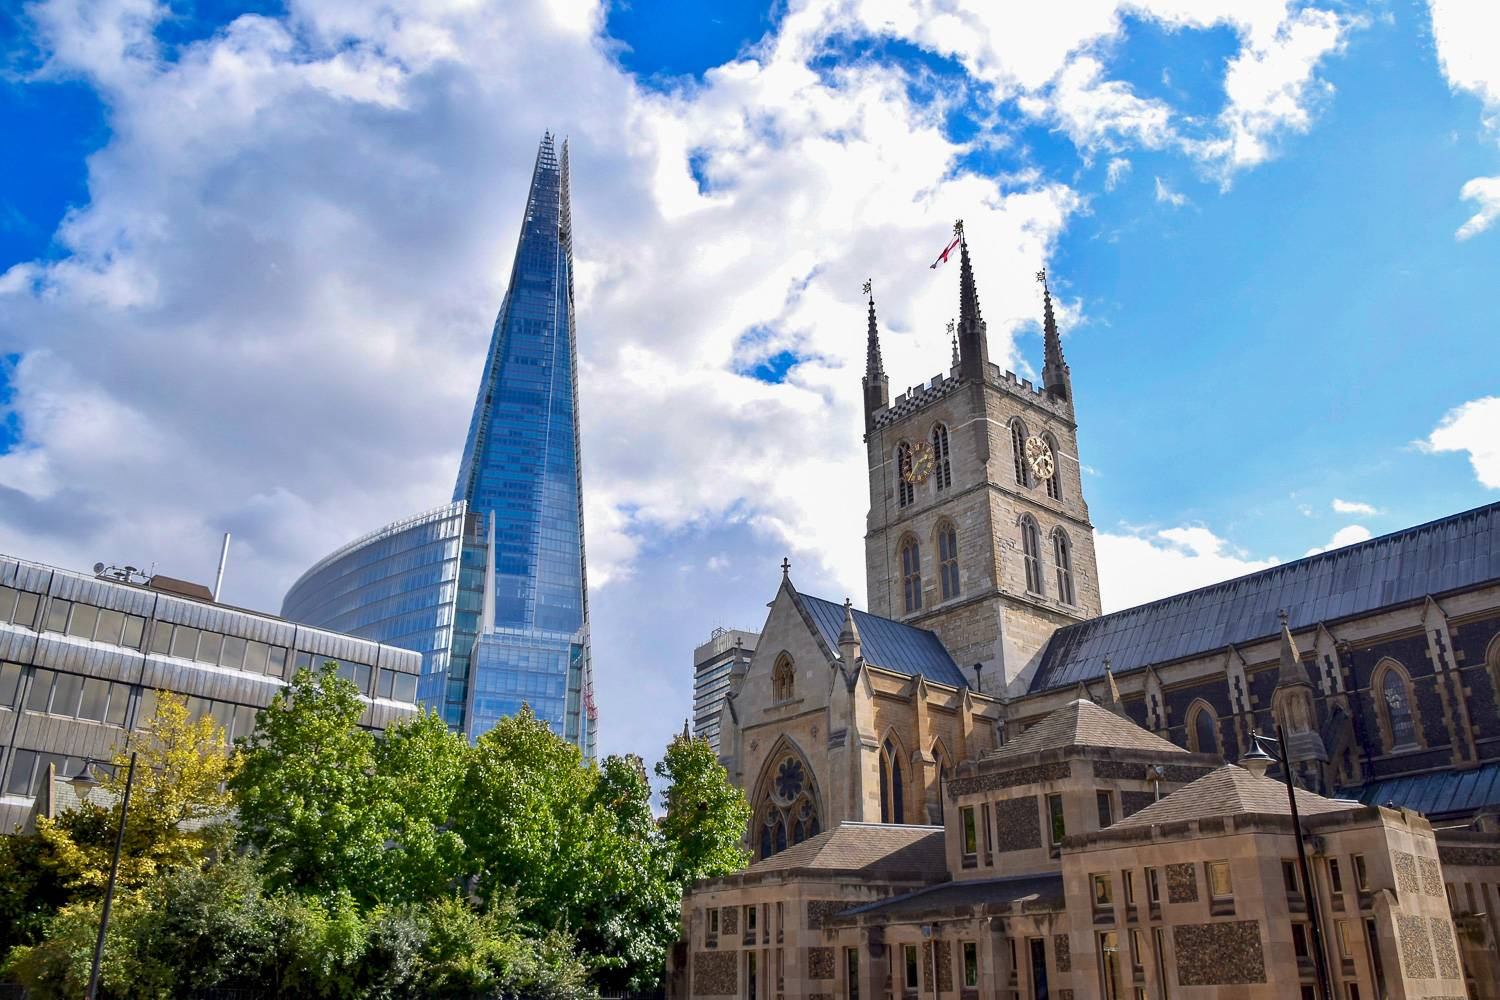 Immagine di The Shard visto dal quartiere londinese di Southwark.